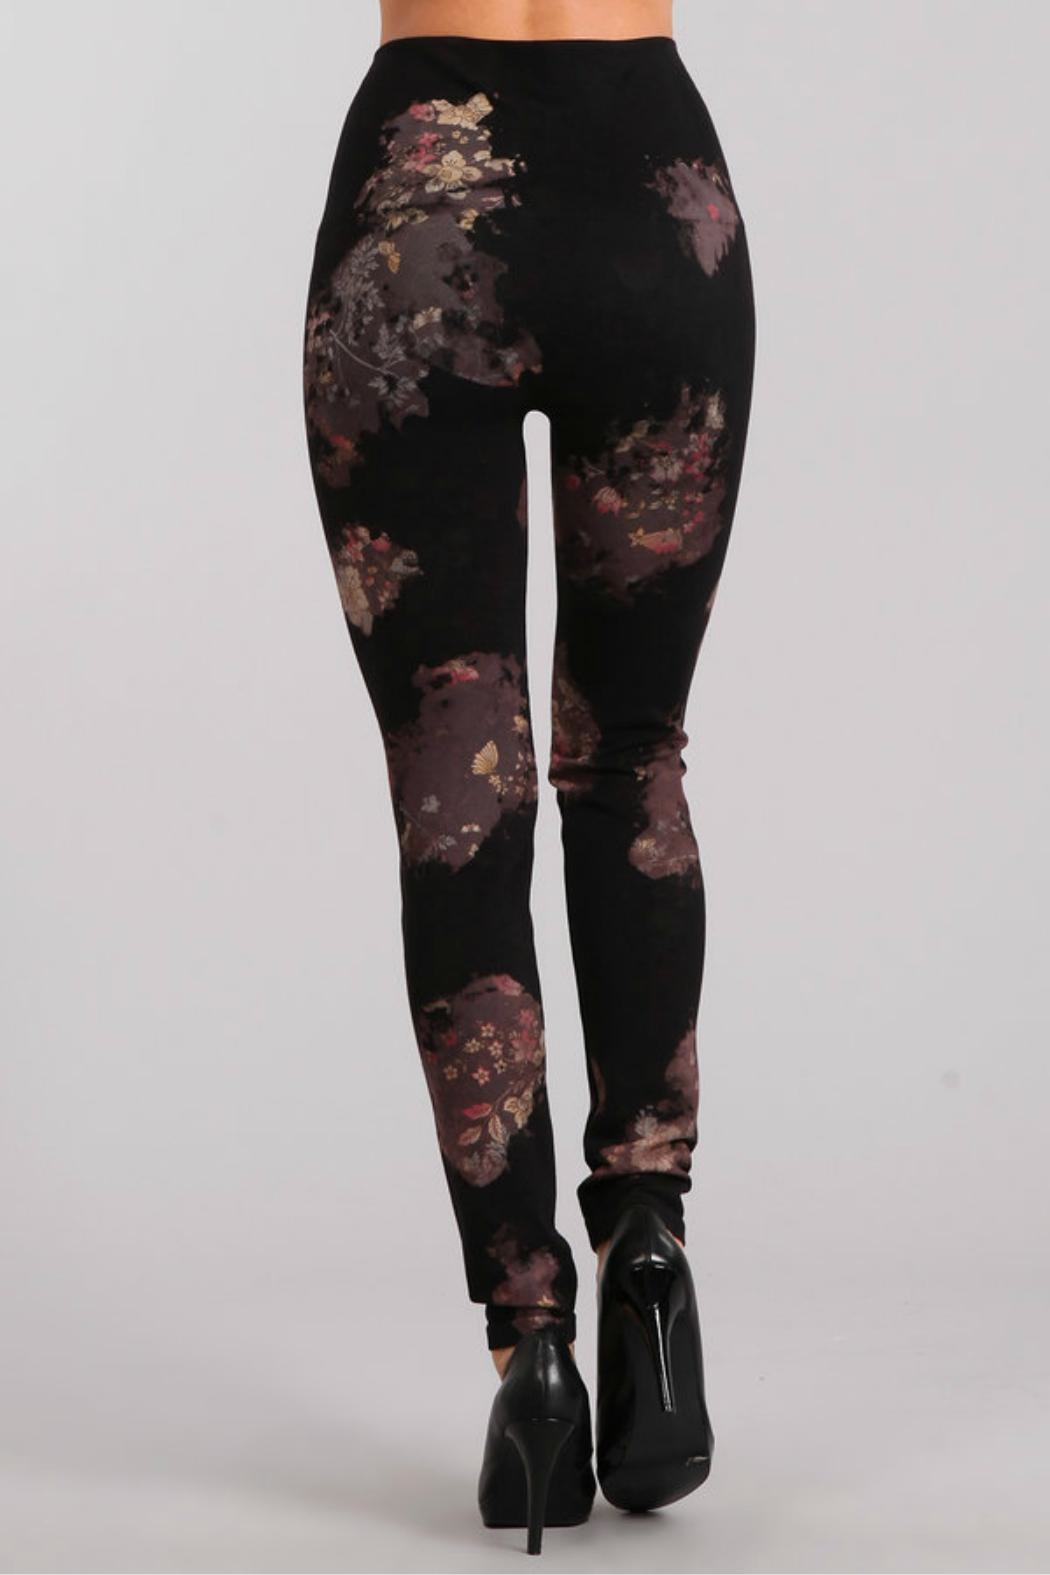 M. Rena High Waist Leggings. - Side Cropped Image